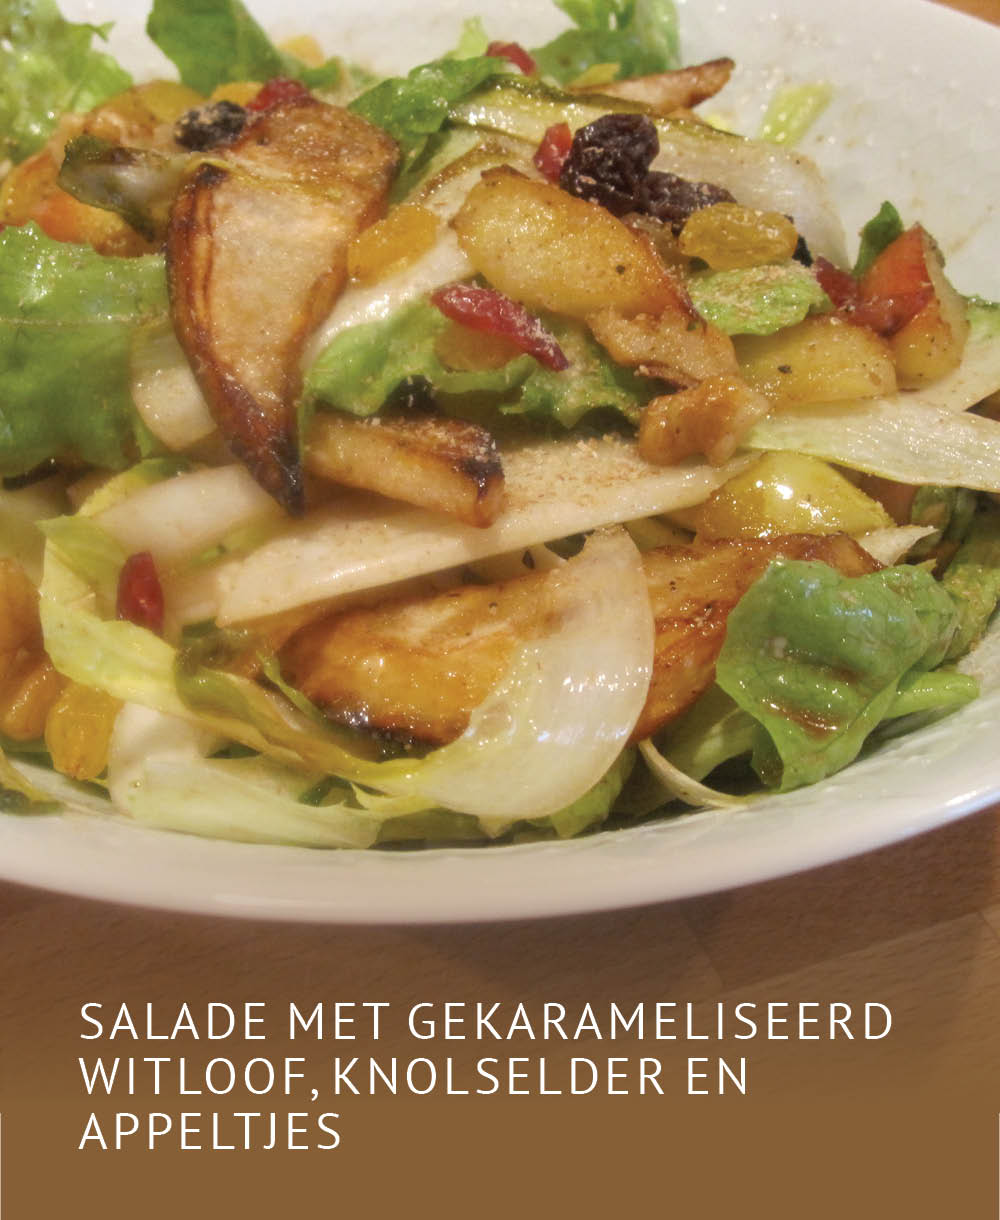 Empty the Fridge - Salade met gekarameliseerd witloof knolselder en appeltjes